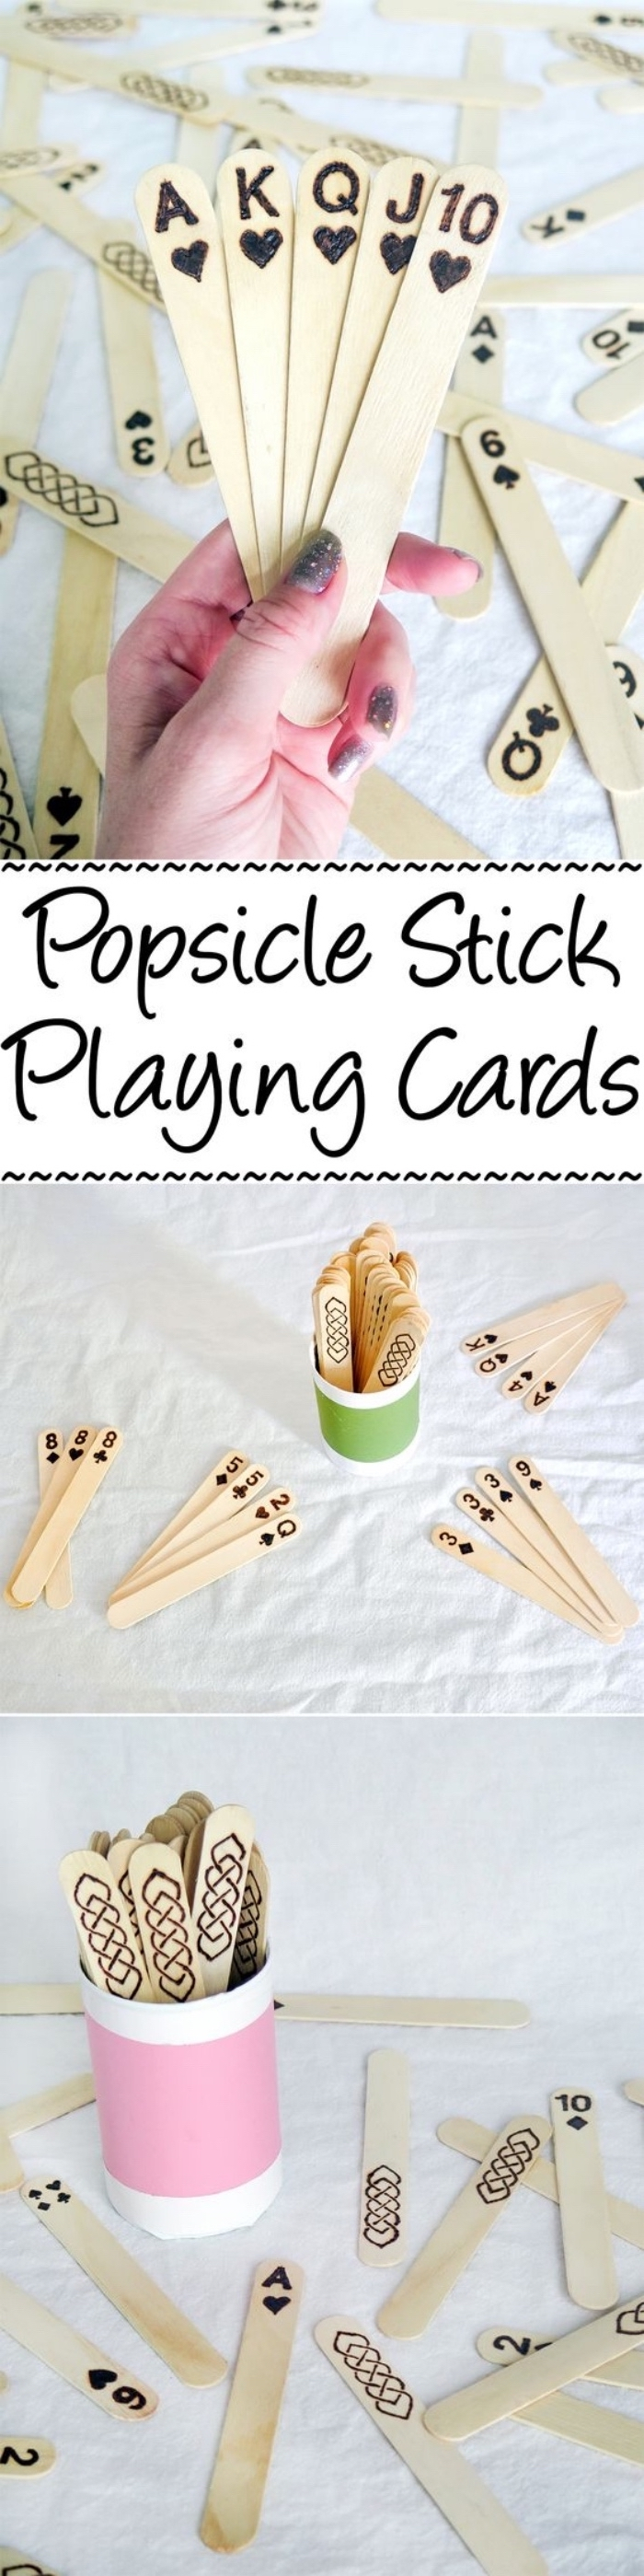 popsicle stick playing cards, step by step tutorial, diy projects for teens, green and pink, paper cups